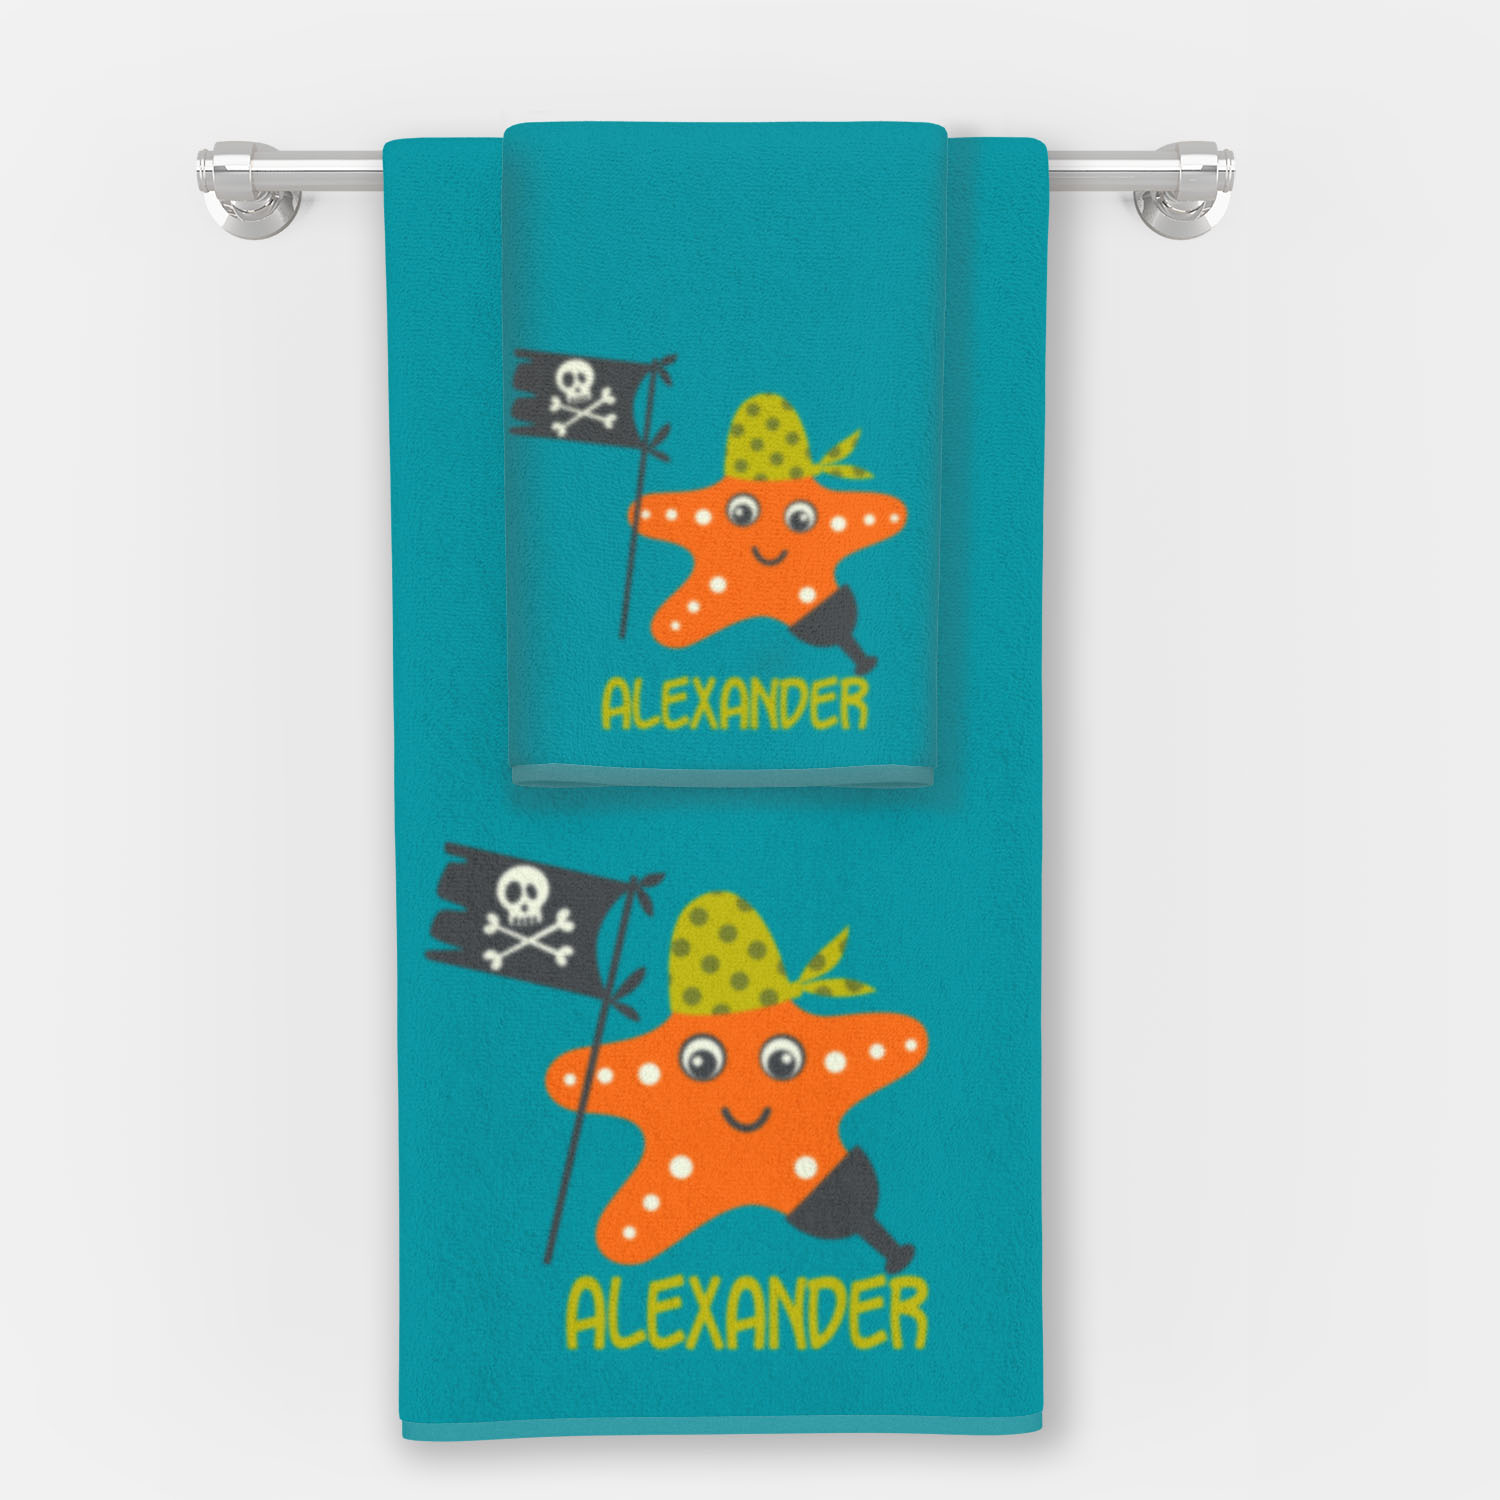 PKBT-00006-PirateAdventure-BATHTOWEL6 Ahoy Matey Pirate Adventure Bath Shower Bathroom Towels by Pickleberry Kids